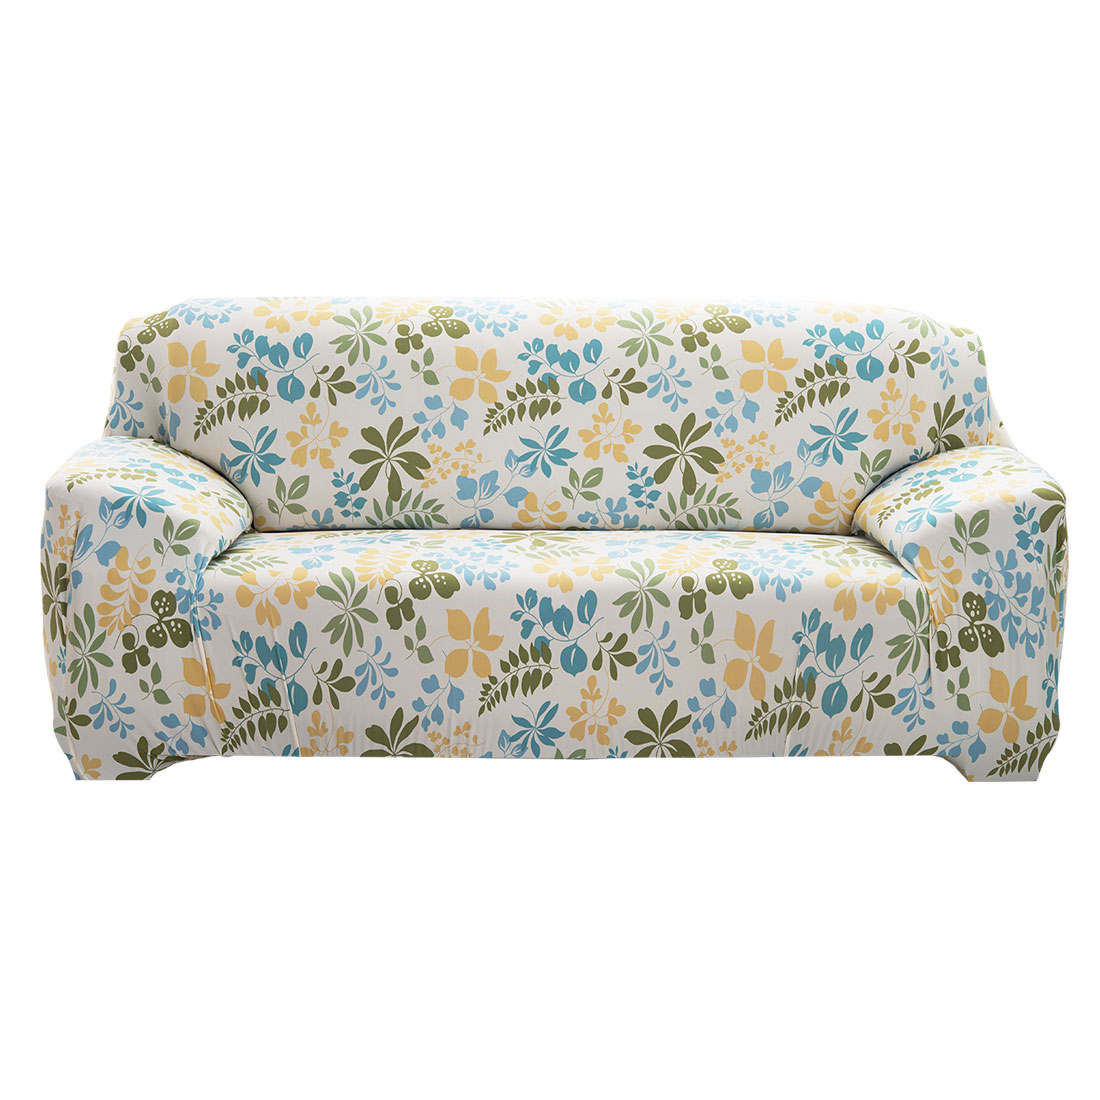 "Unique Bargains 92.5"" - 118""Mult-color Sofa Cover Slipcovers Protector Stretch 4 Seats Flower Pattern Hawaii Style"